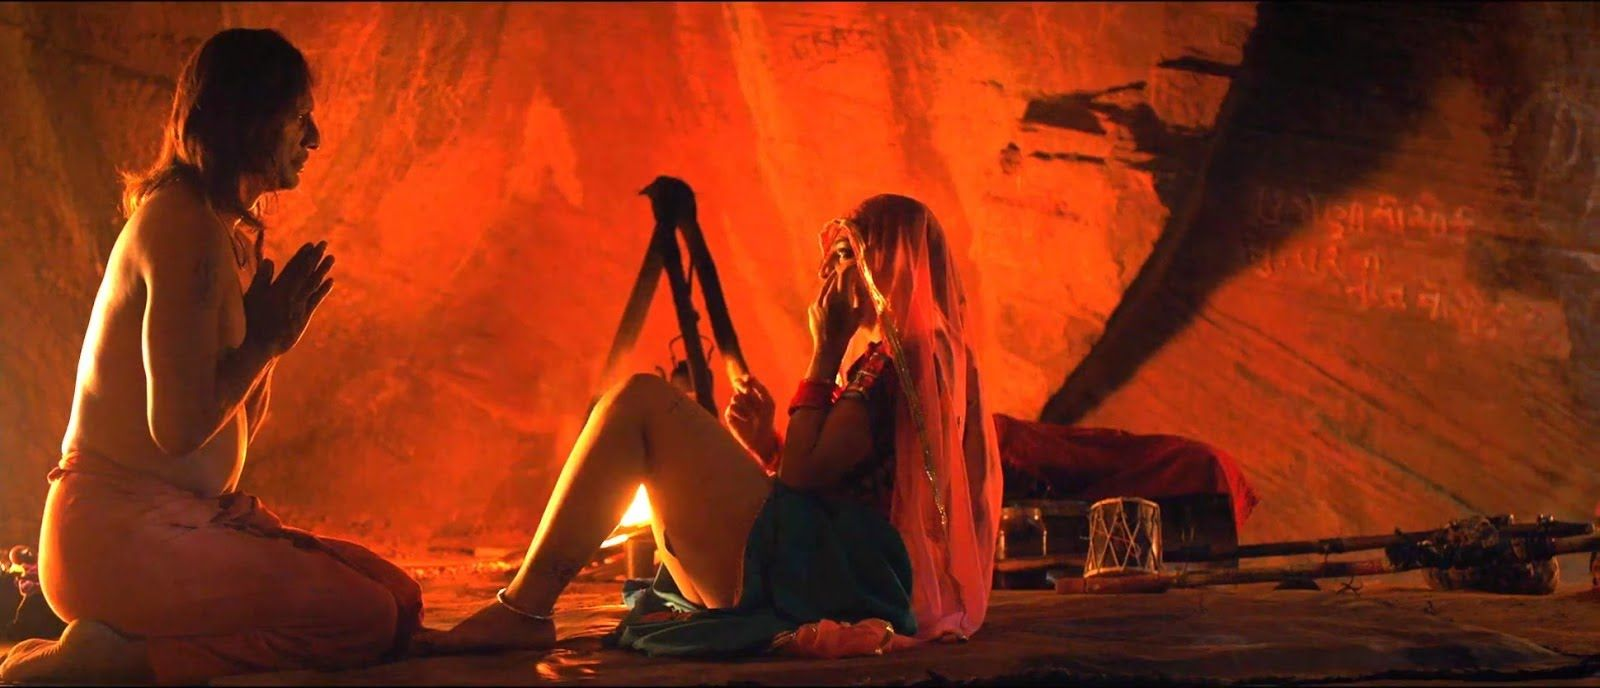 Radhika Apte Hot Scene From Parched  Official Trailer  Ajay Devgn  Le -9429